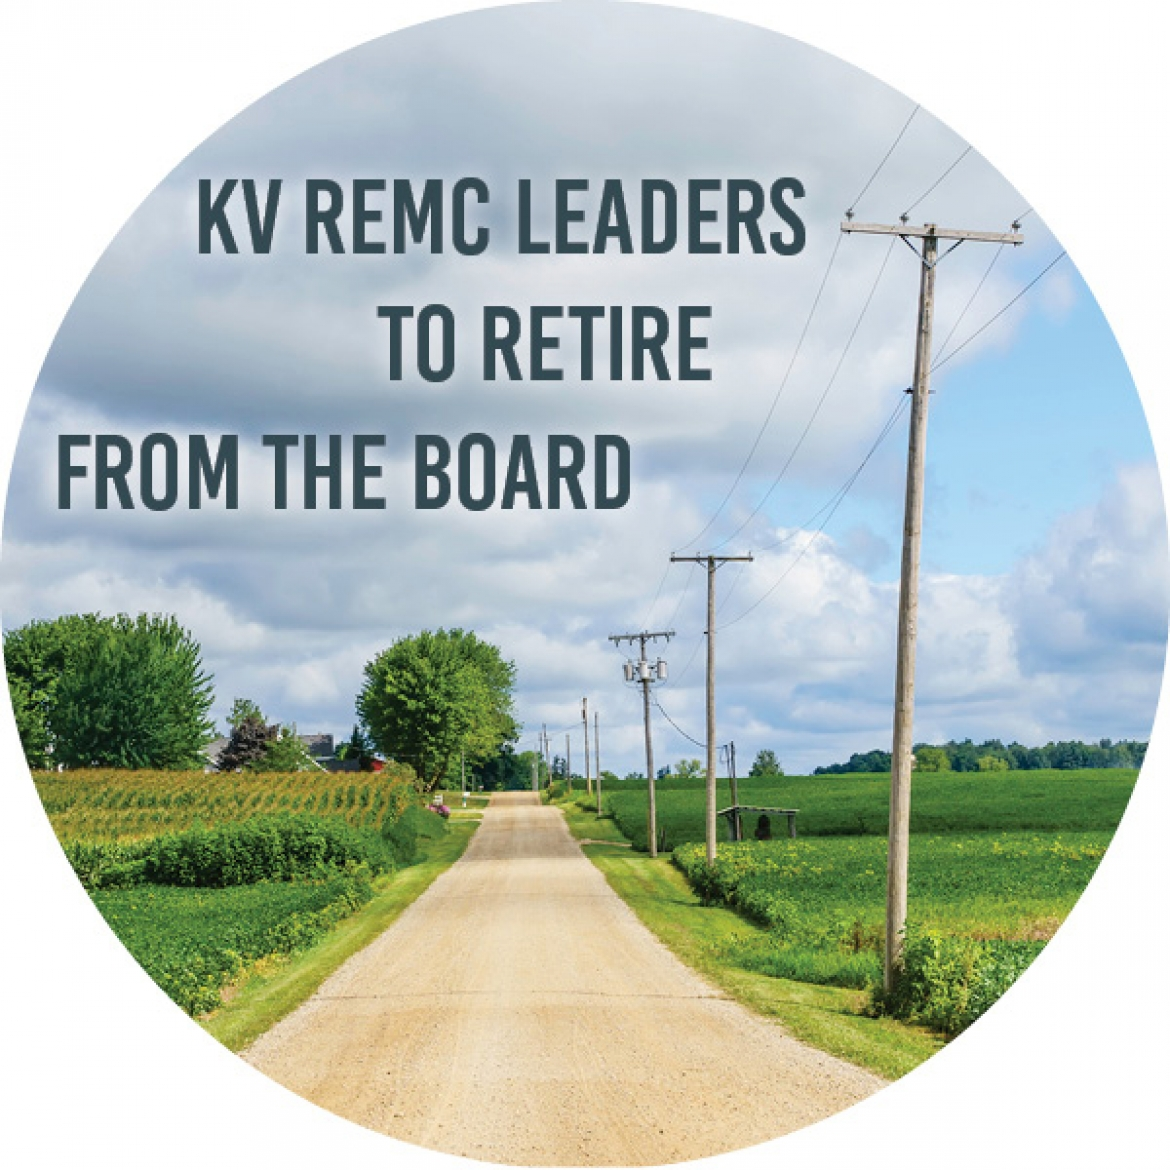 KV REMC Leaders To Retire From The Board